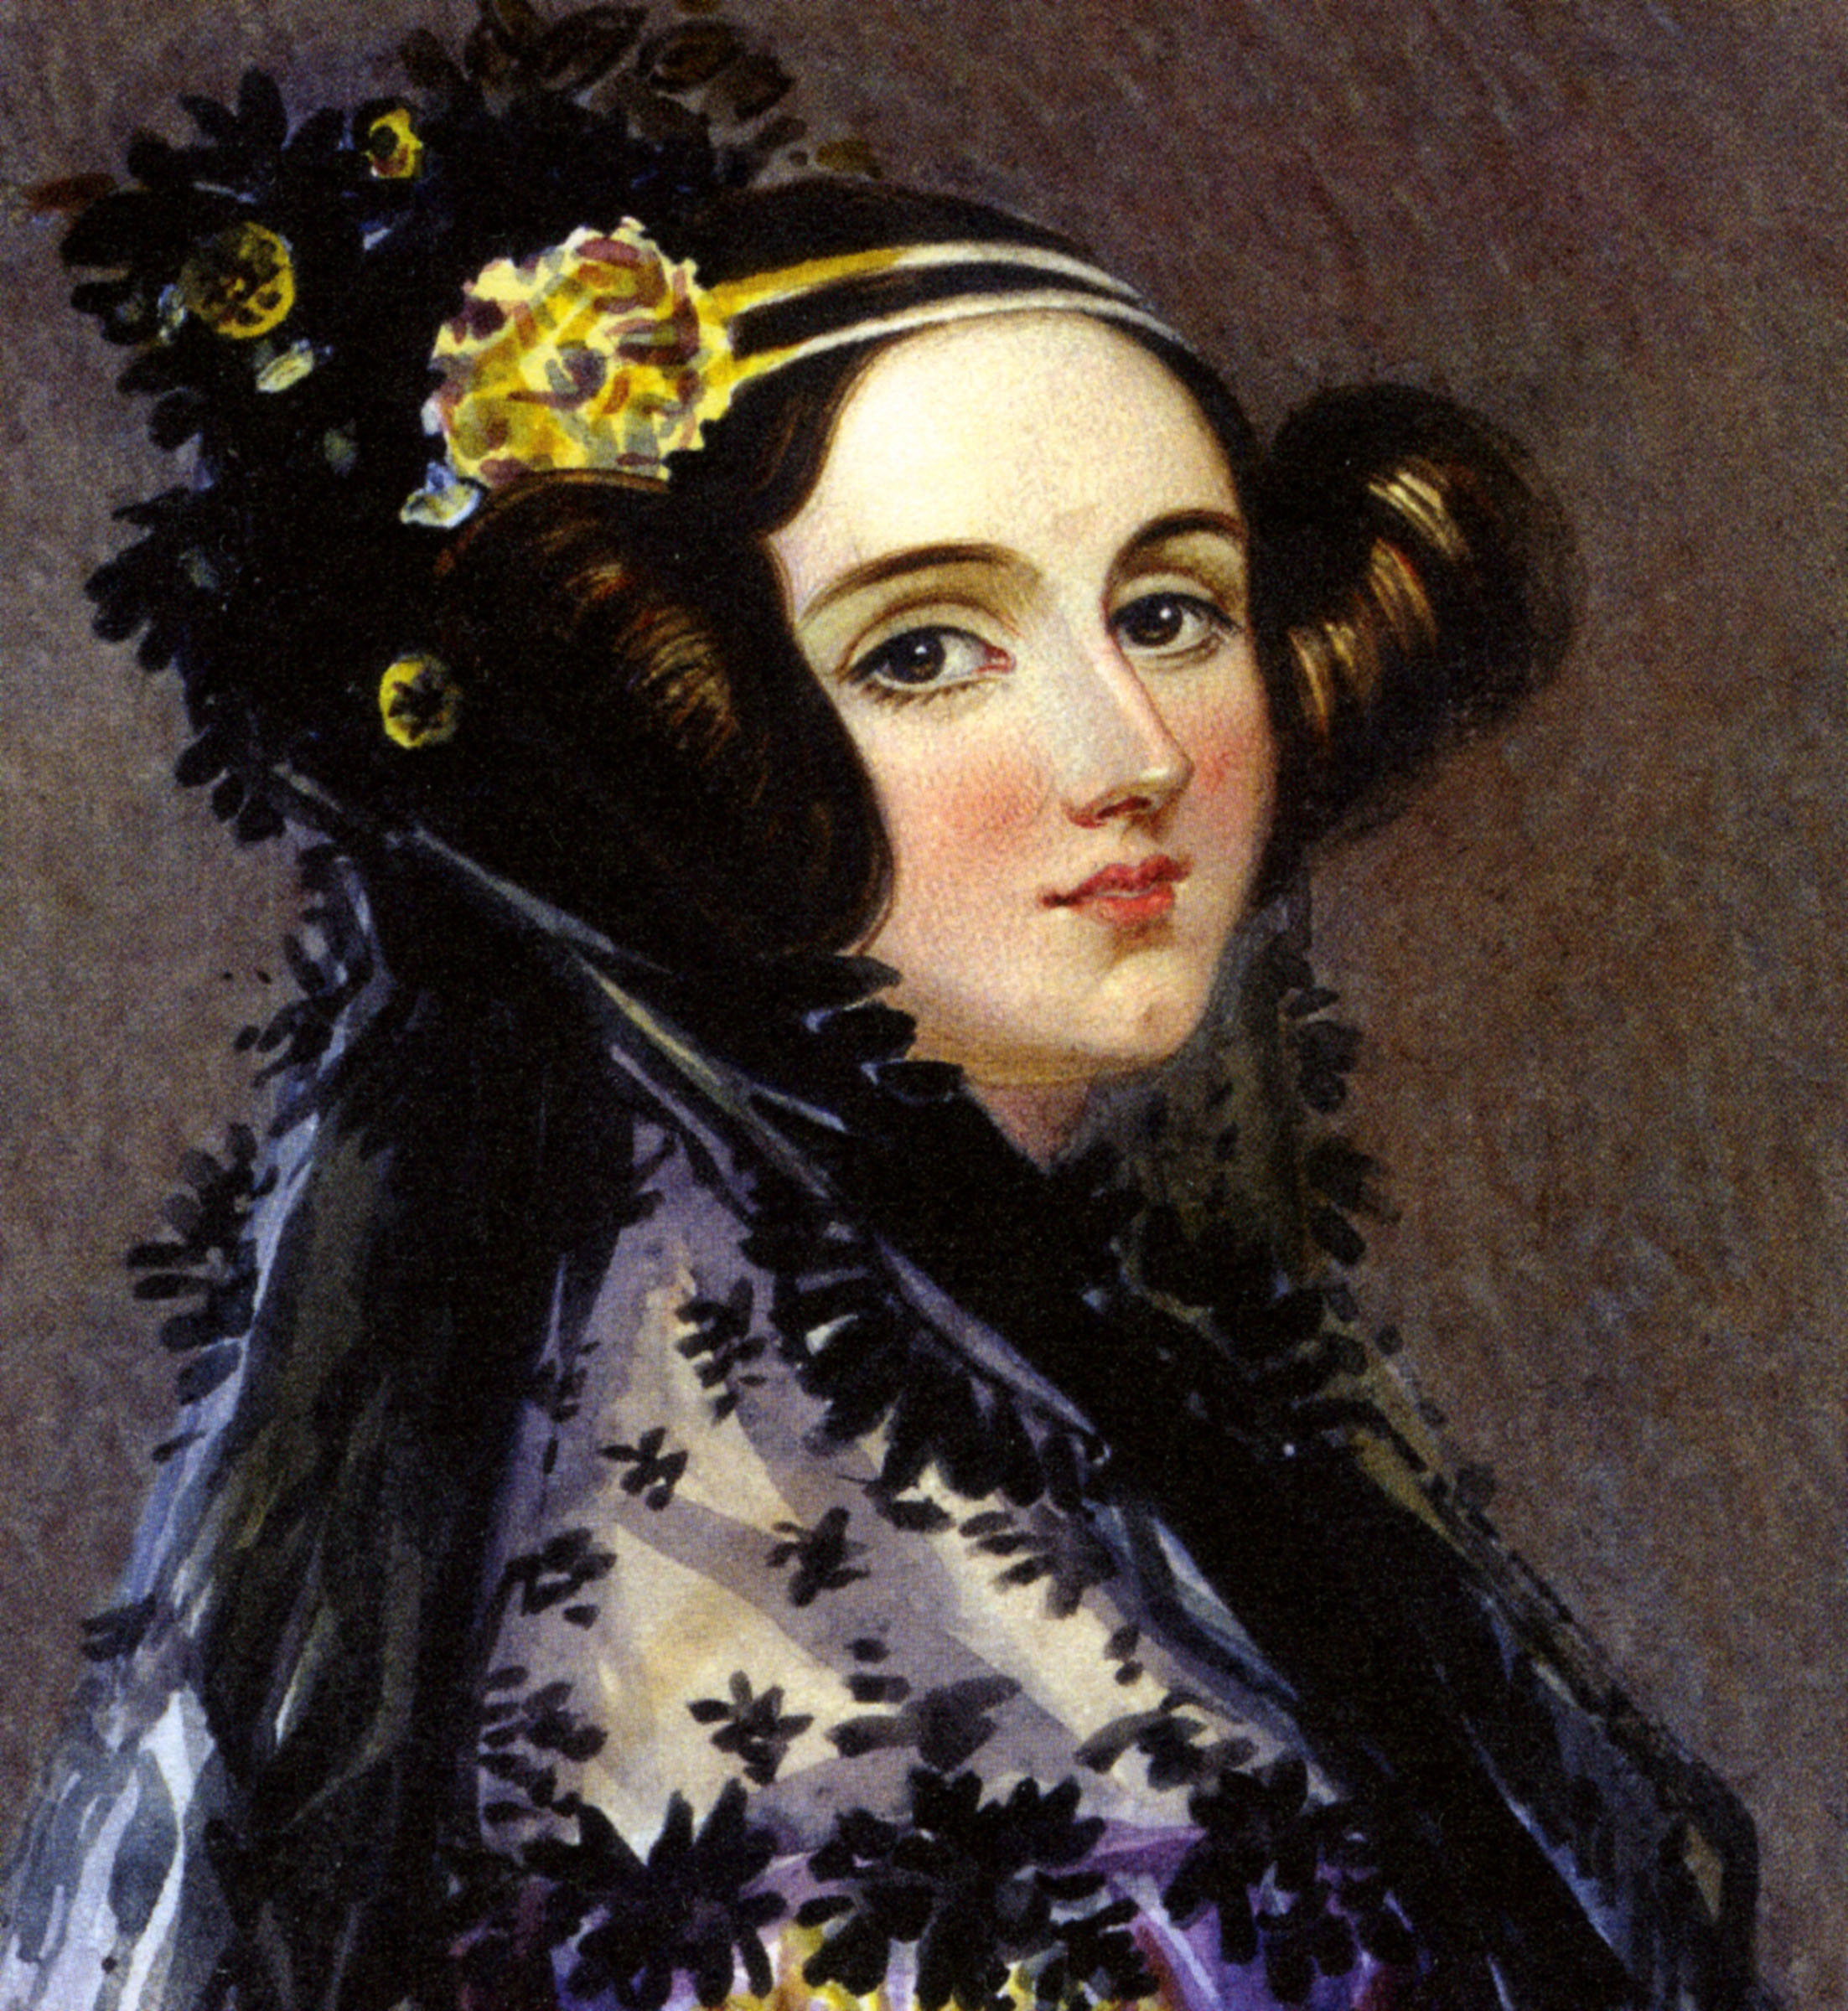 Ada Lovelace, English writer and mathematician (1815-1852) daughter of Lord Byron and friend of Charles Babbage. BJ5F25 ADA LOVELACE -